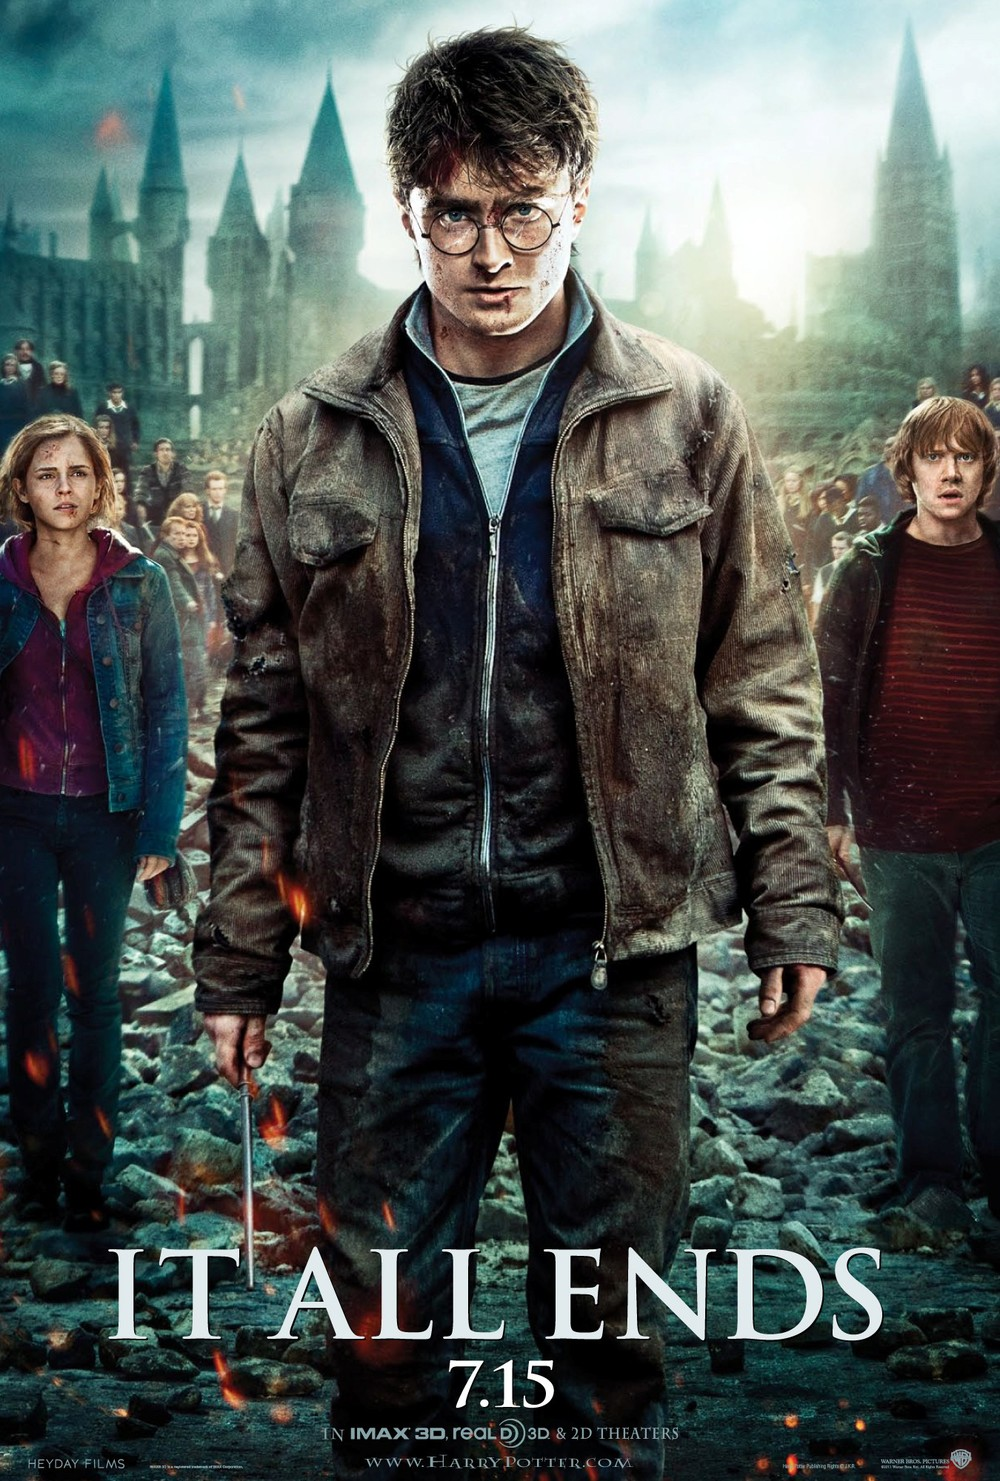 harry-potter-deathly-hallows-part-2-movie-poster-hi-res-01.jpg